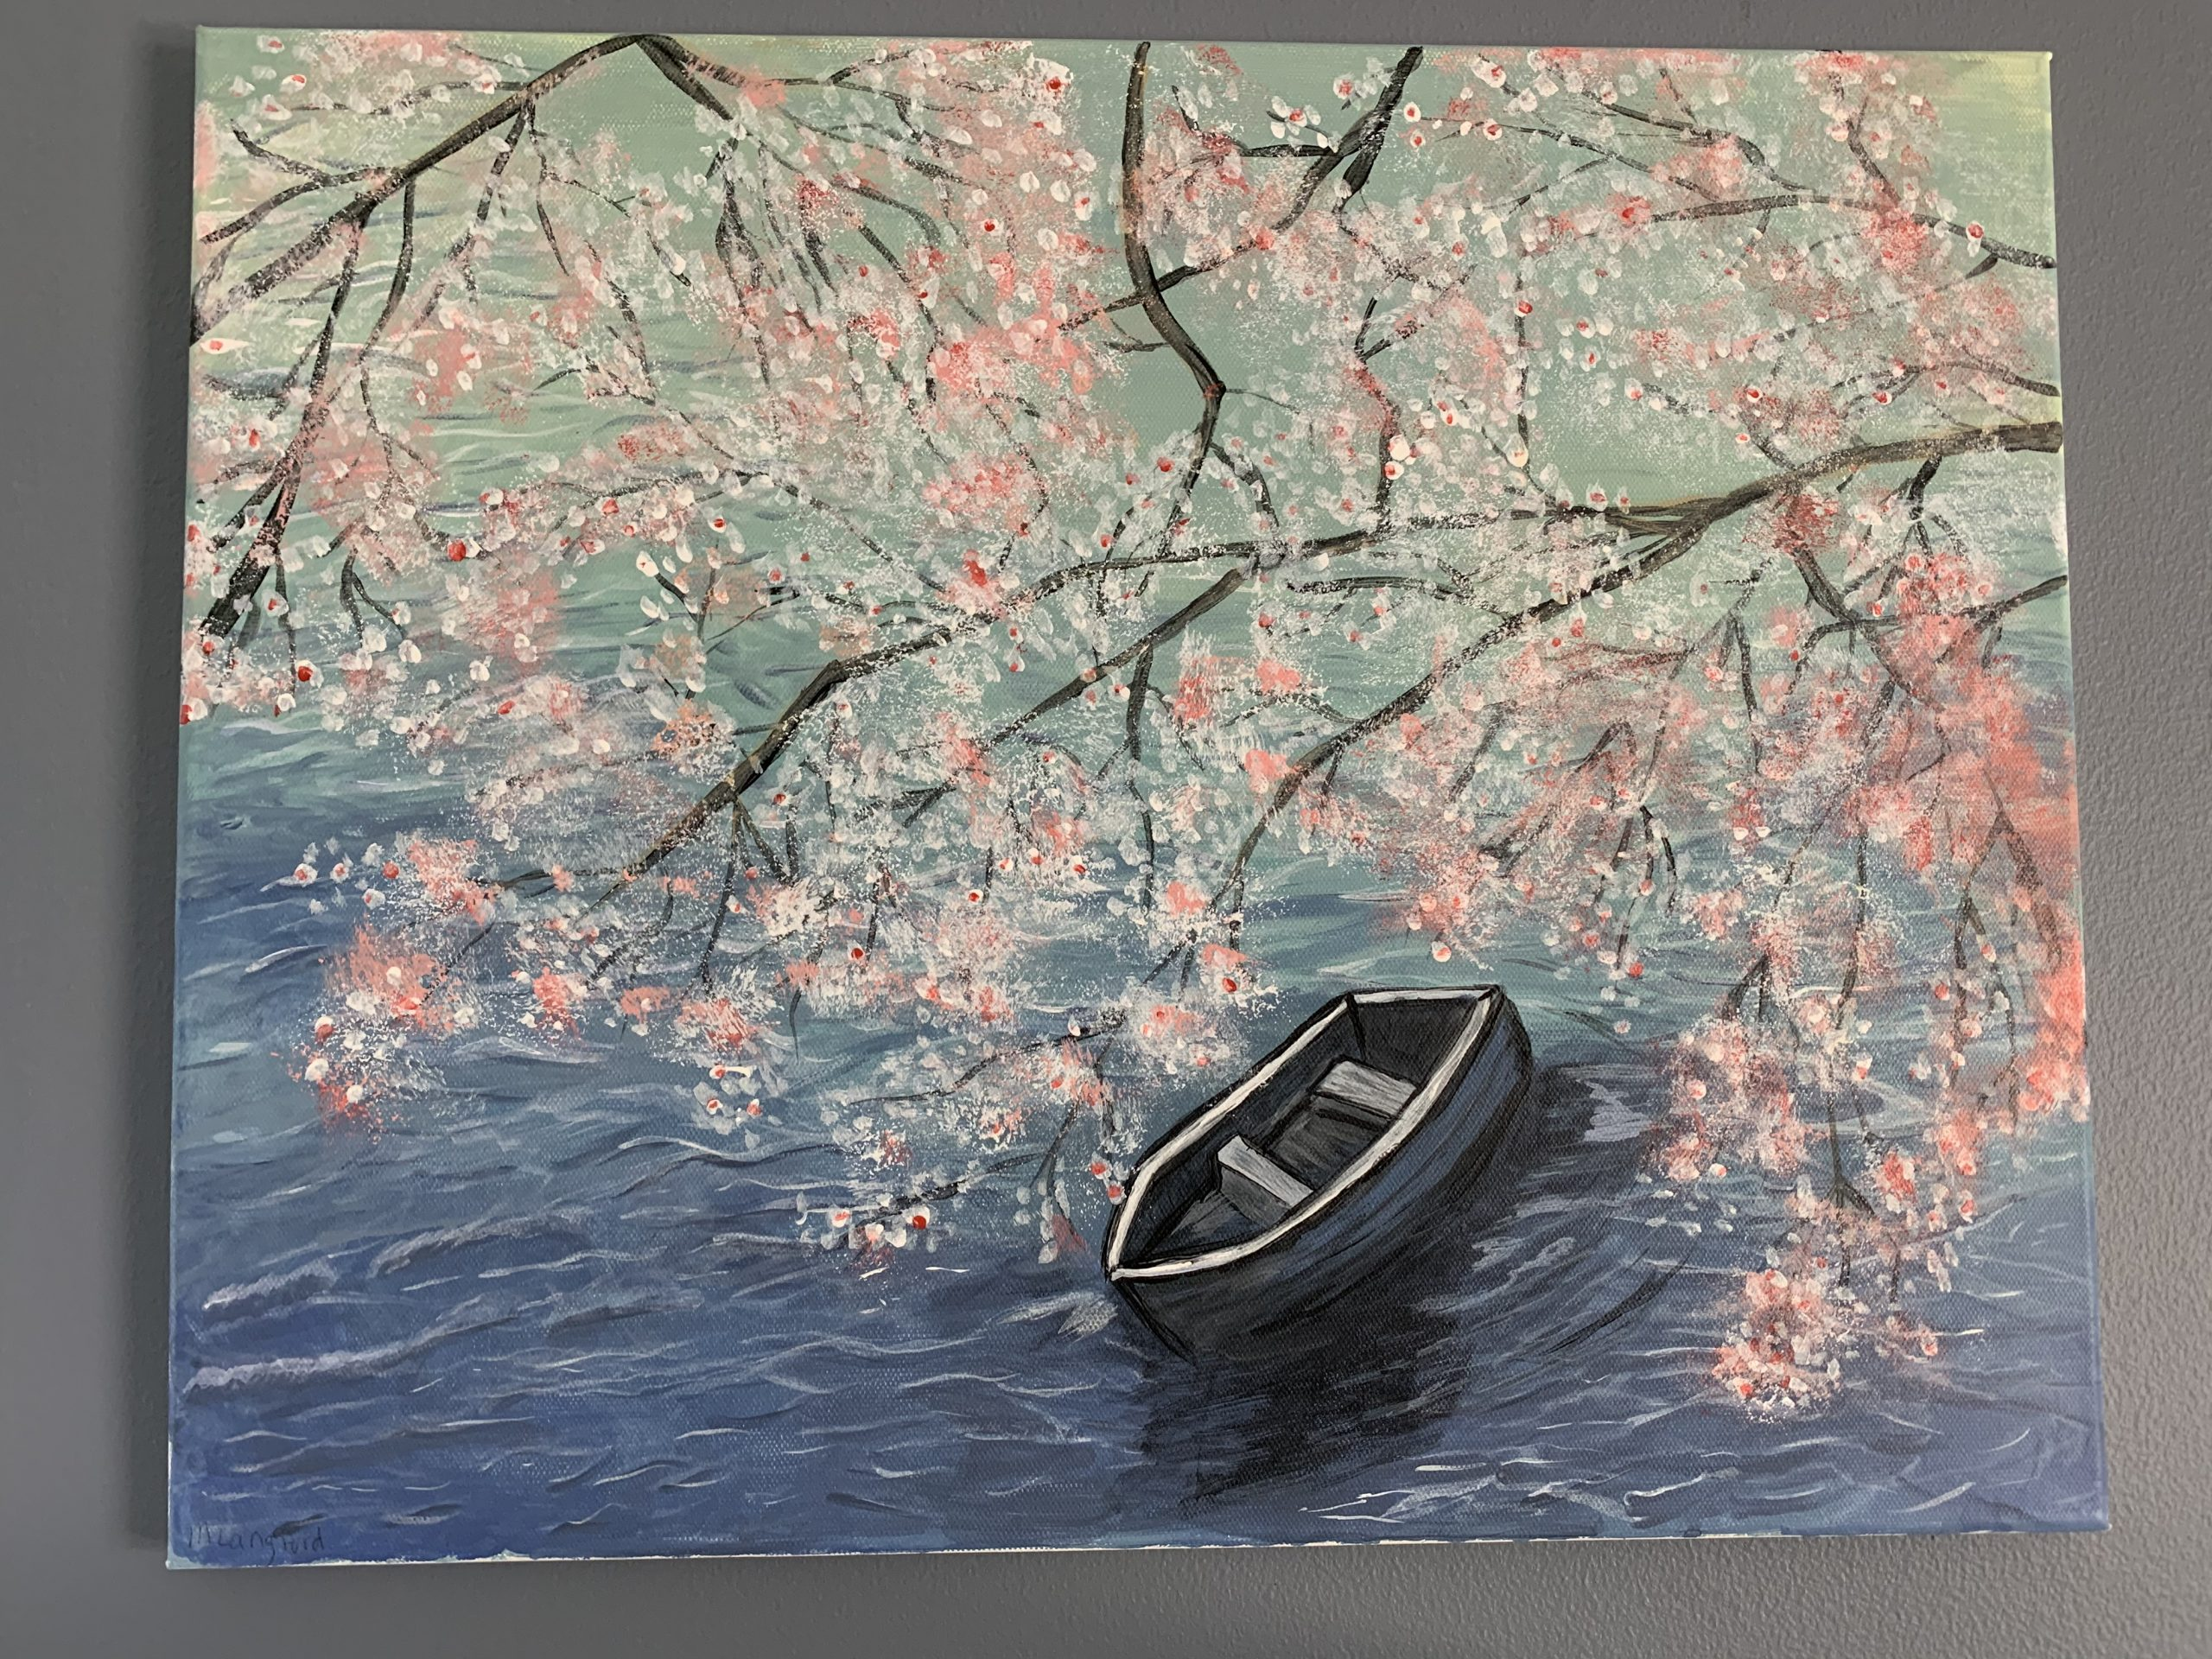 Painting with boat and cherry tree.